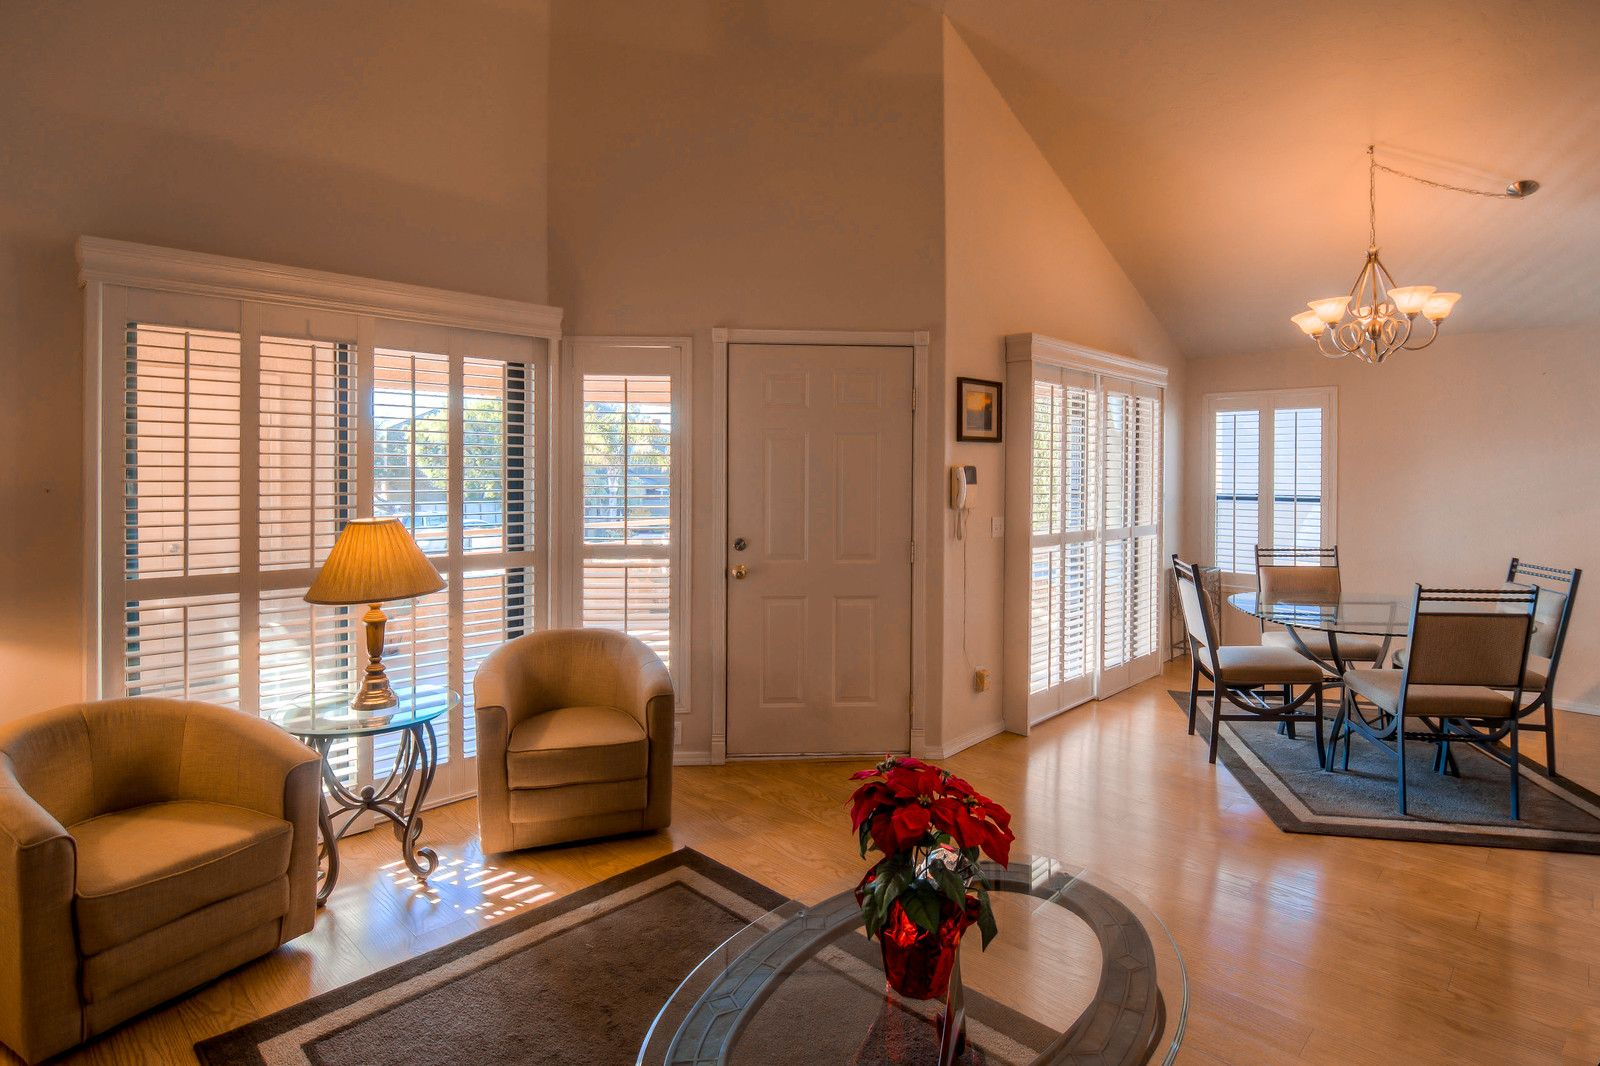 To learn more about this home for sale at weimer place unit